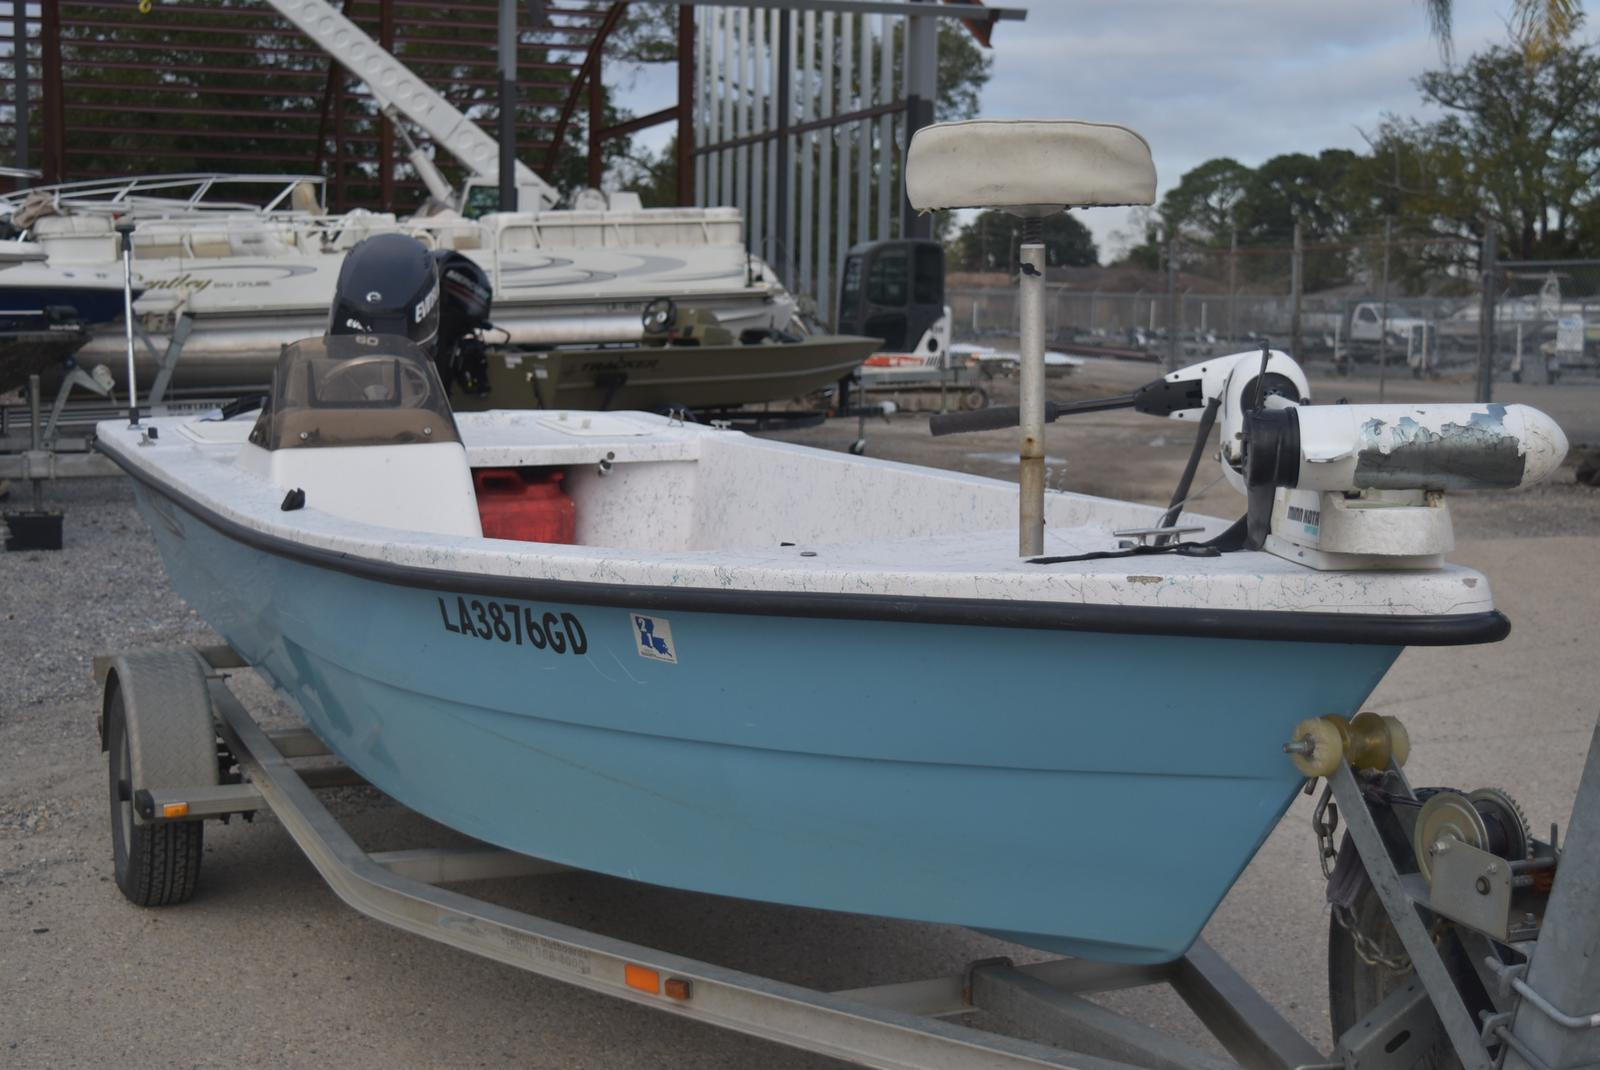 2012 Stumpnocker boat for sale, model of the boat is 17 Stumpnocker & Image # 5 of 7